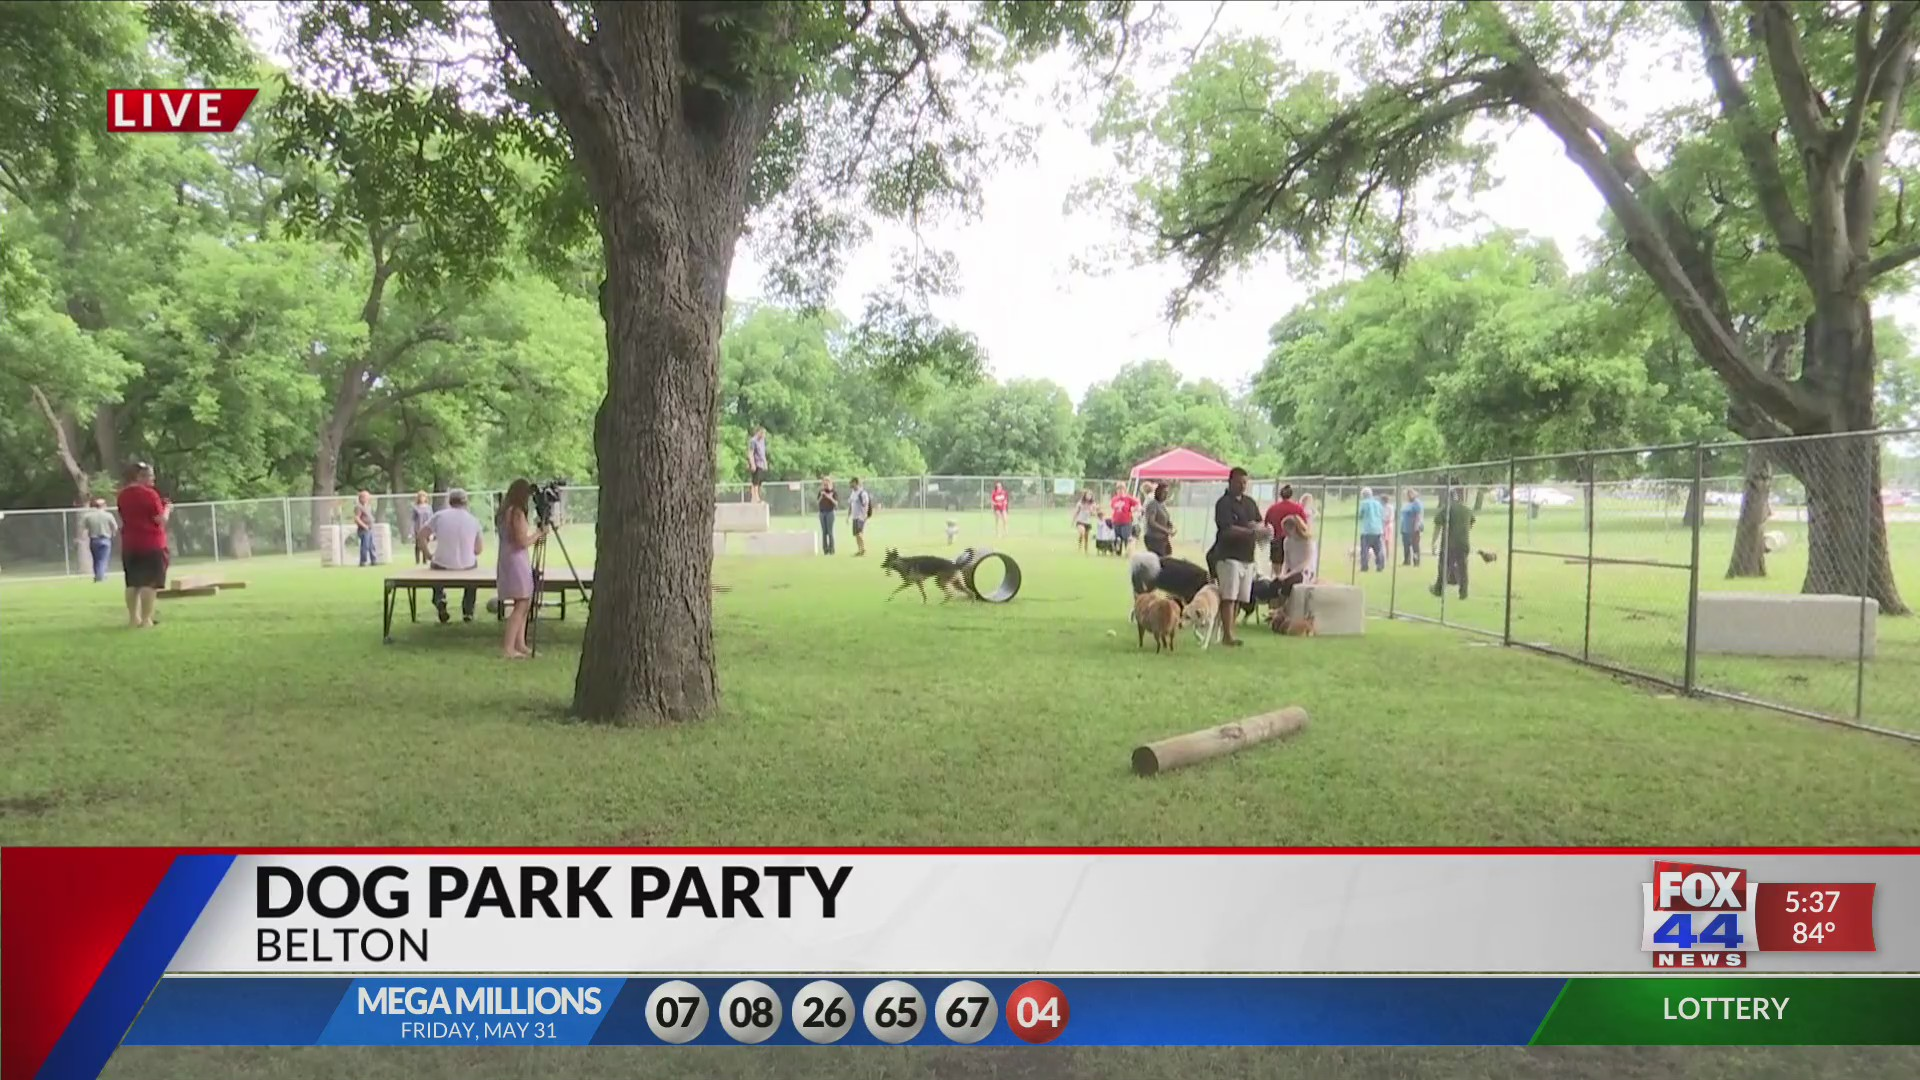 Pop-Pup' party could lead to dog park in Belton